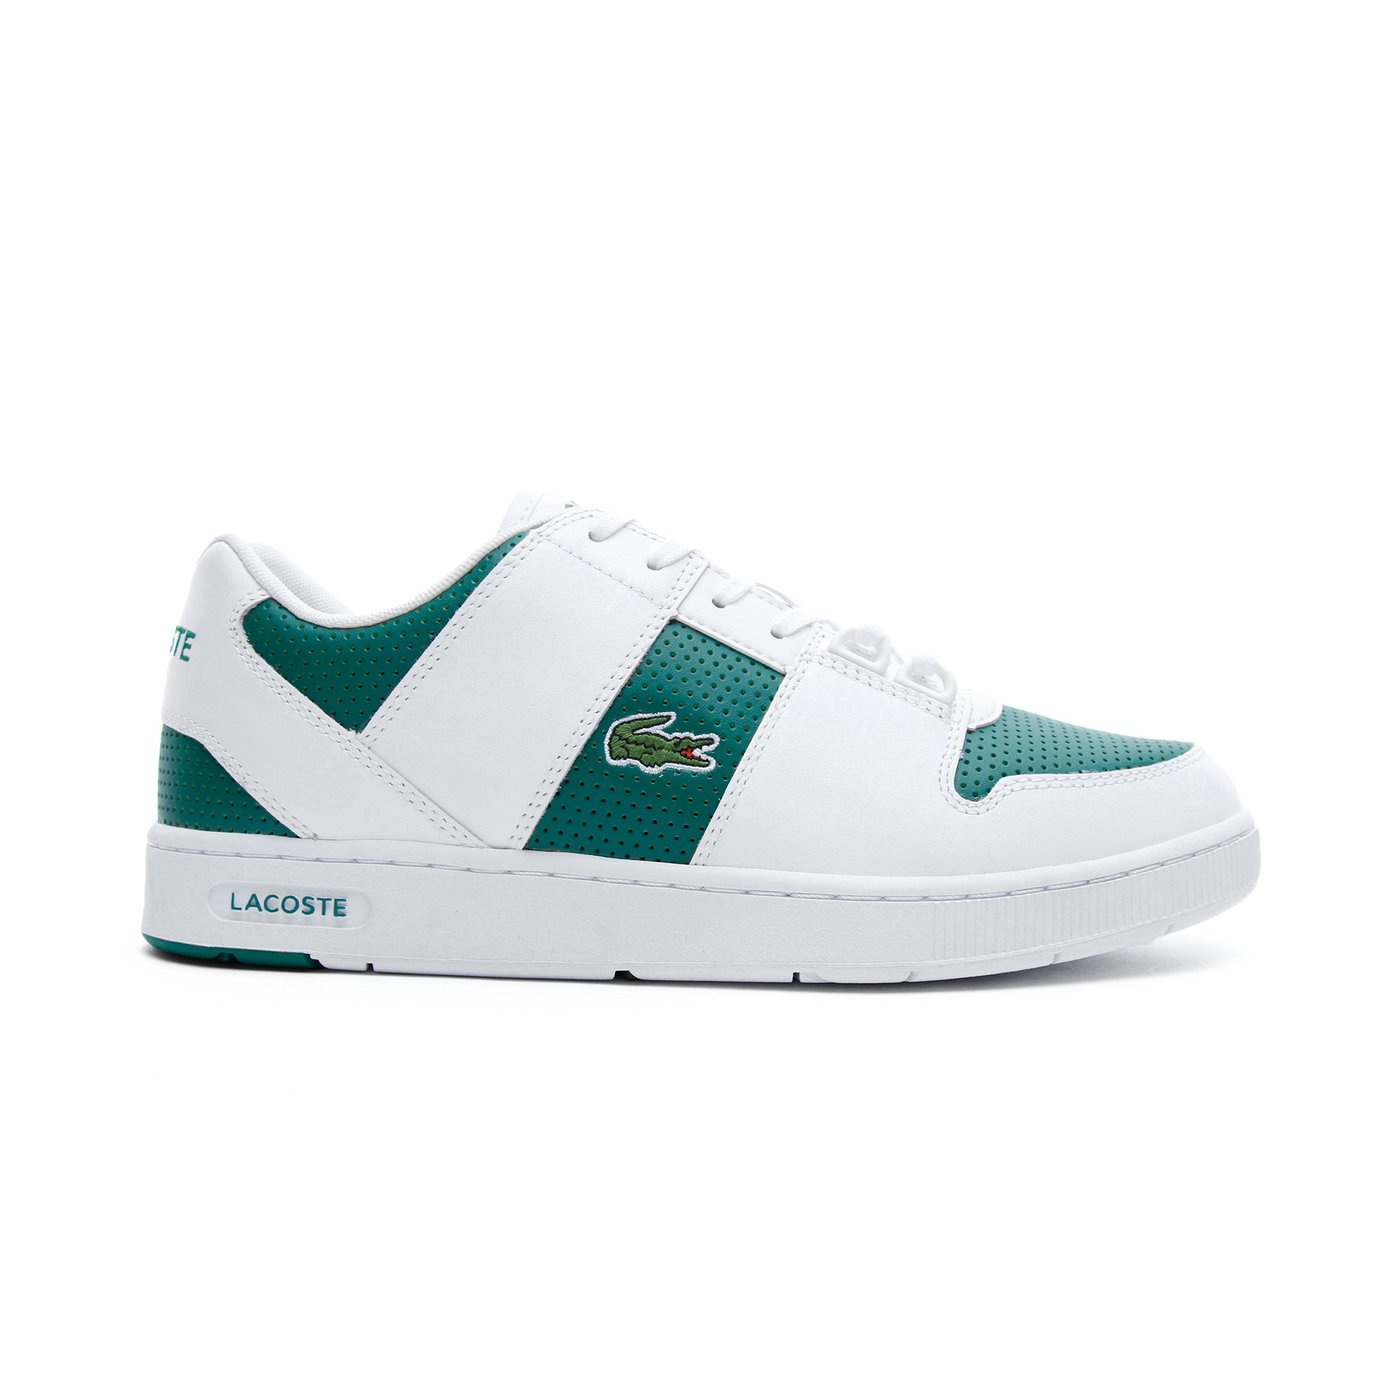 КРОСІВКИ LACOSTE THRILL 319 3